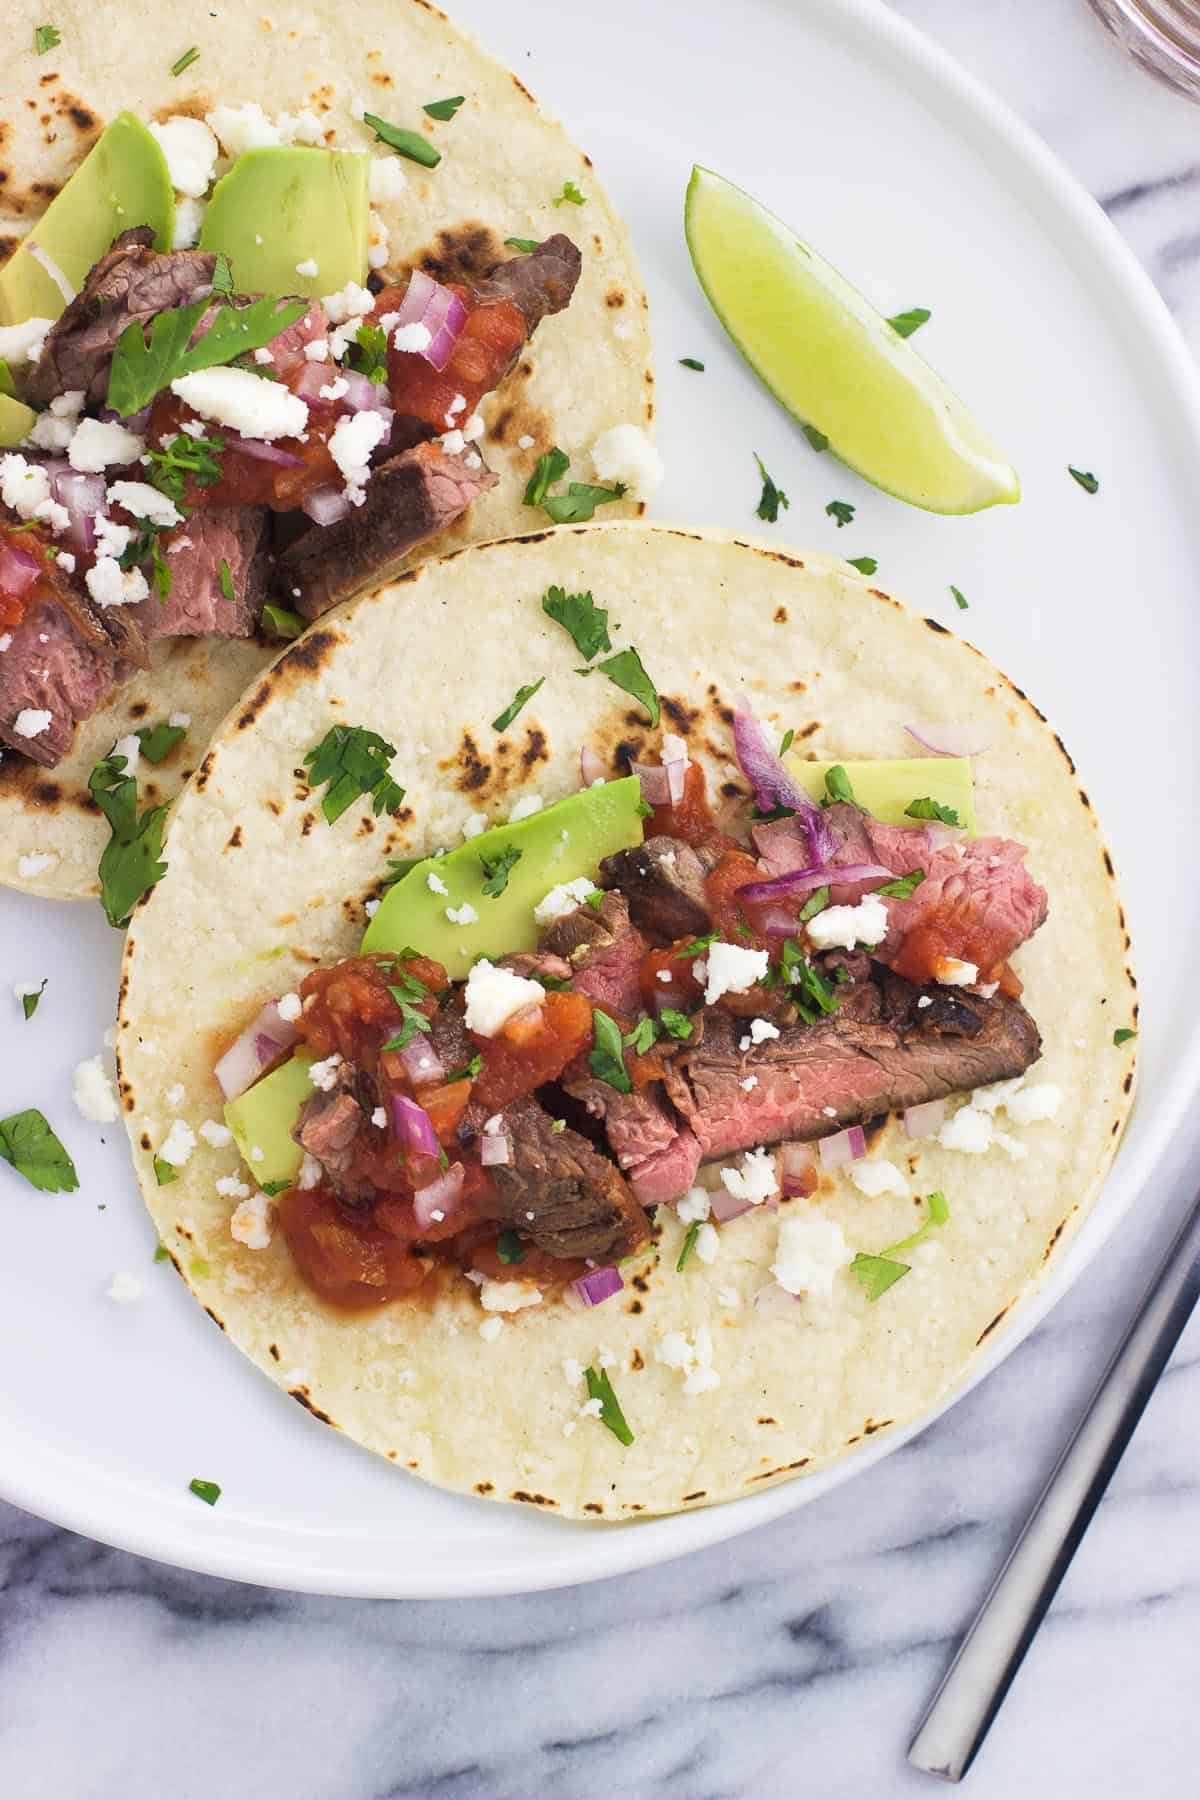 Two grilled carne asada tacos on a plate, including cotija cheese, salsa, avocado slices, and red onion.